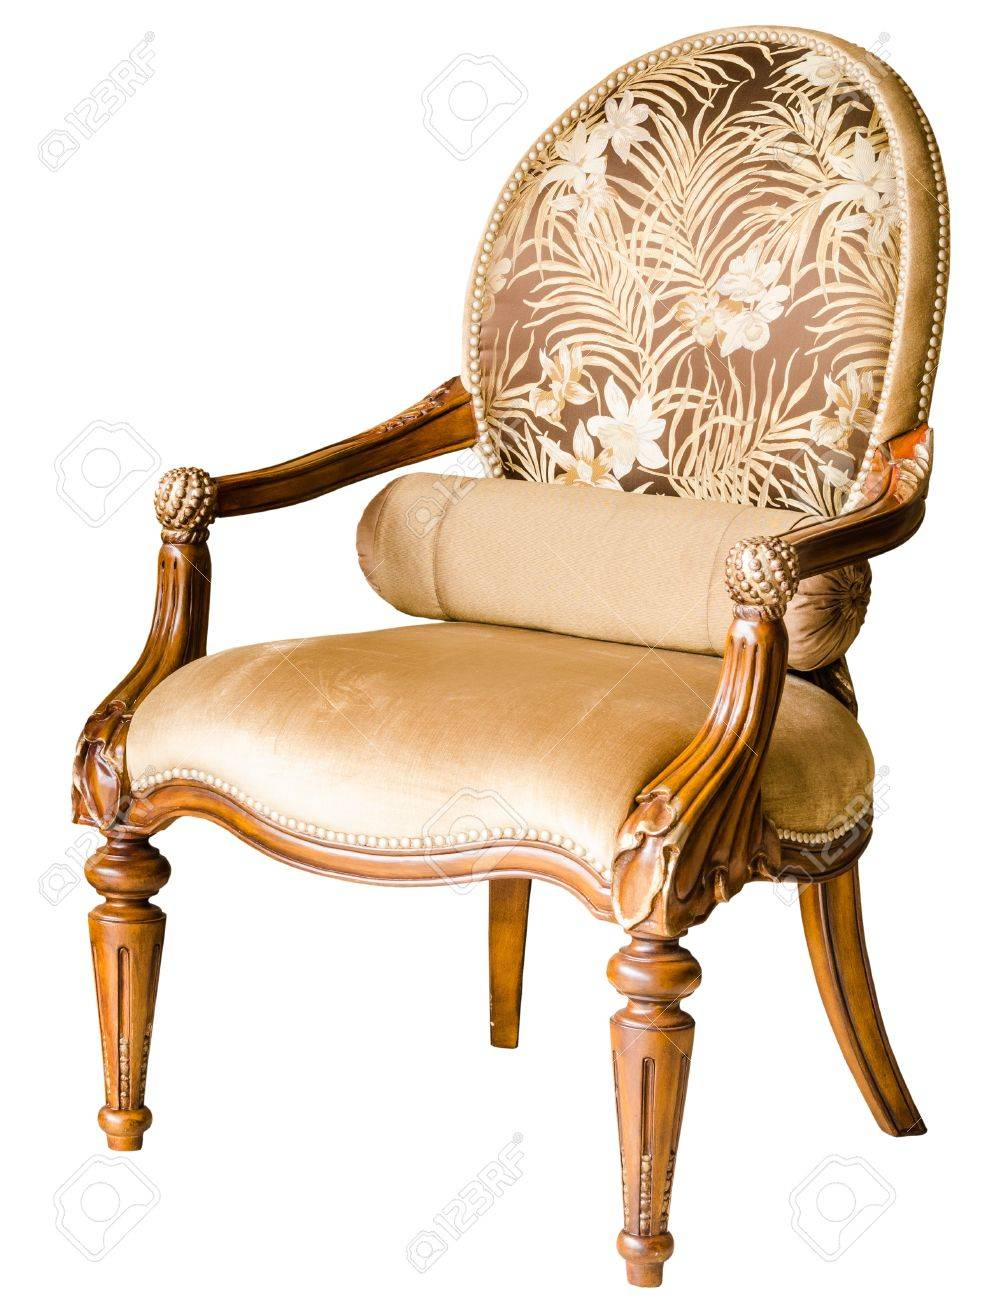 Old wooden chair styles - Stock Photo Classic Style Vintage Wooden Chair And Flower On The Table